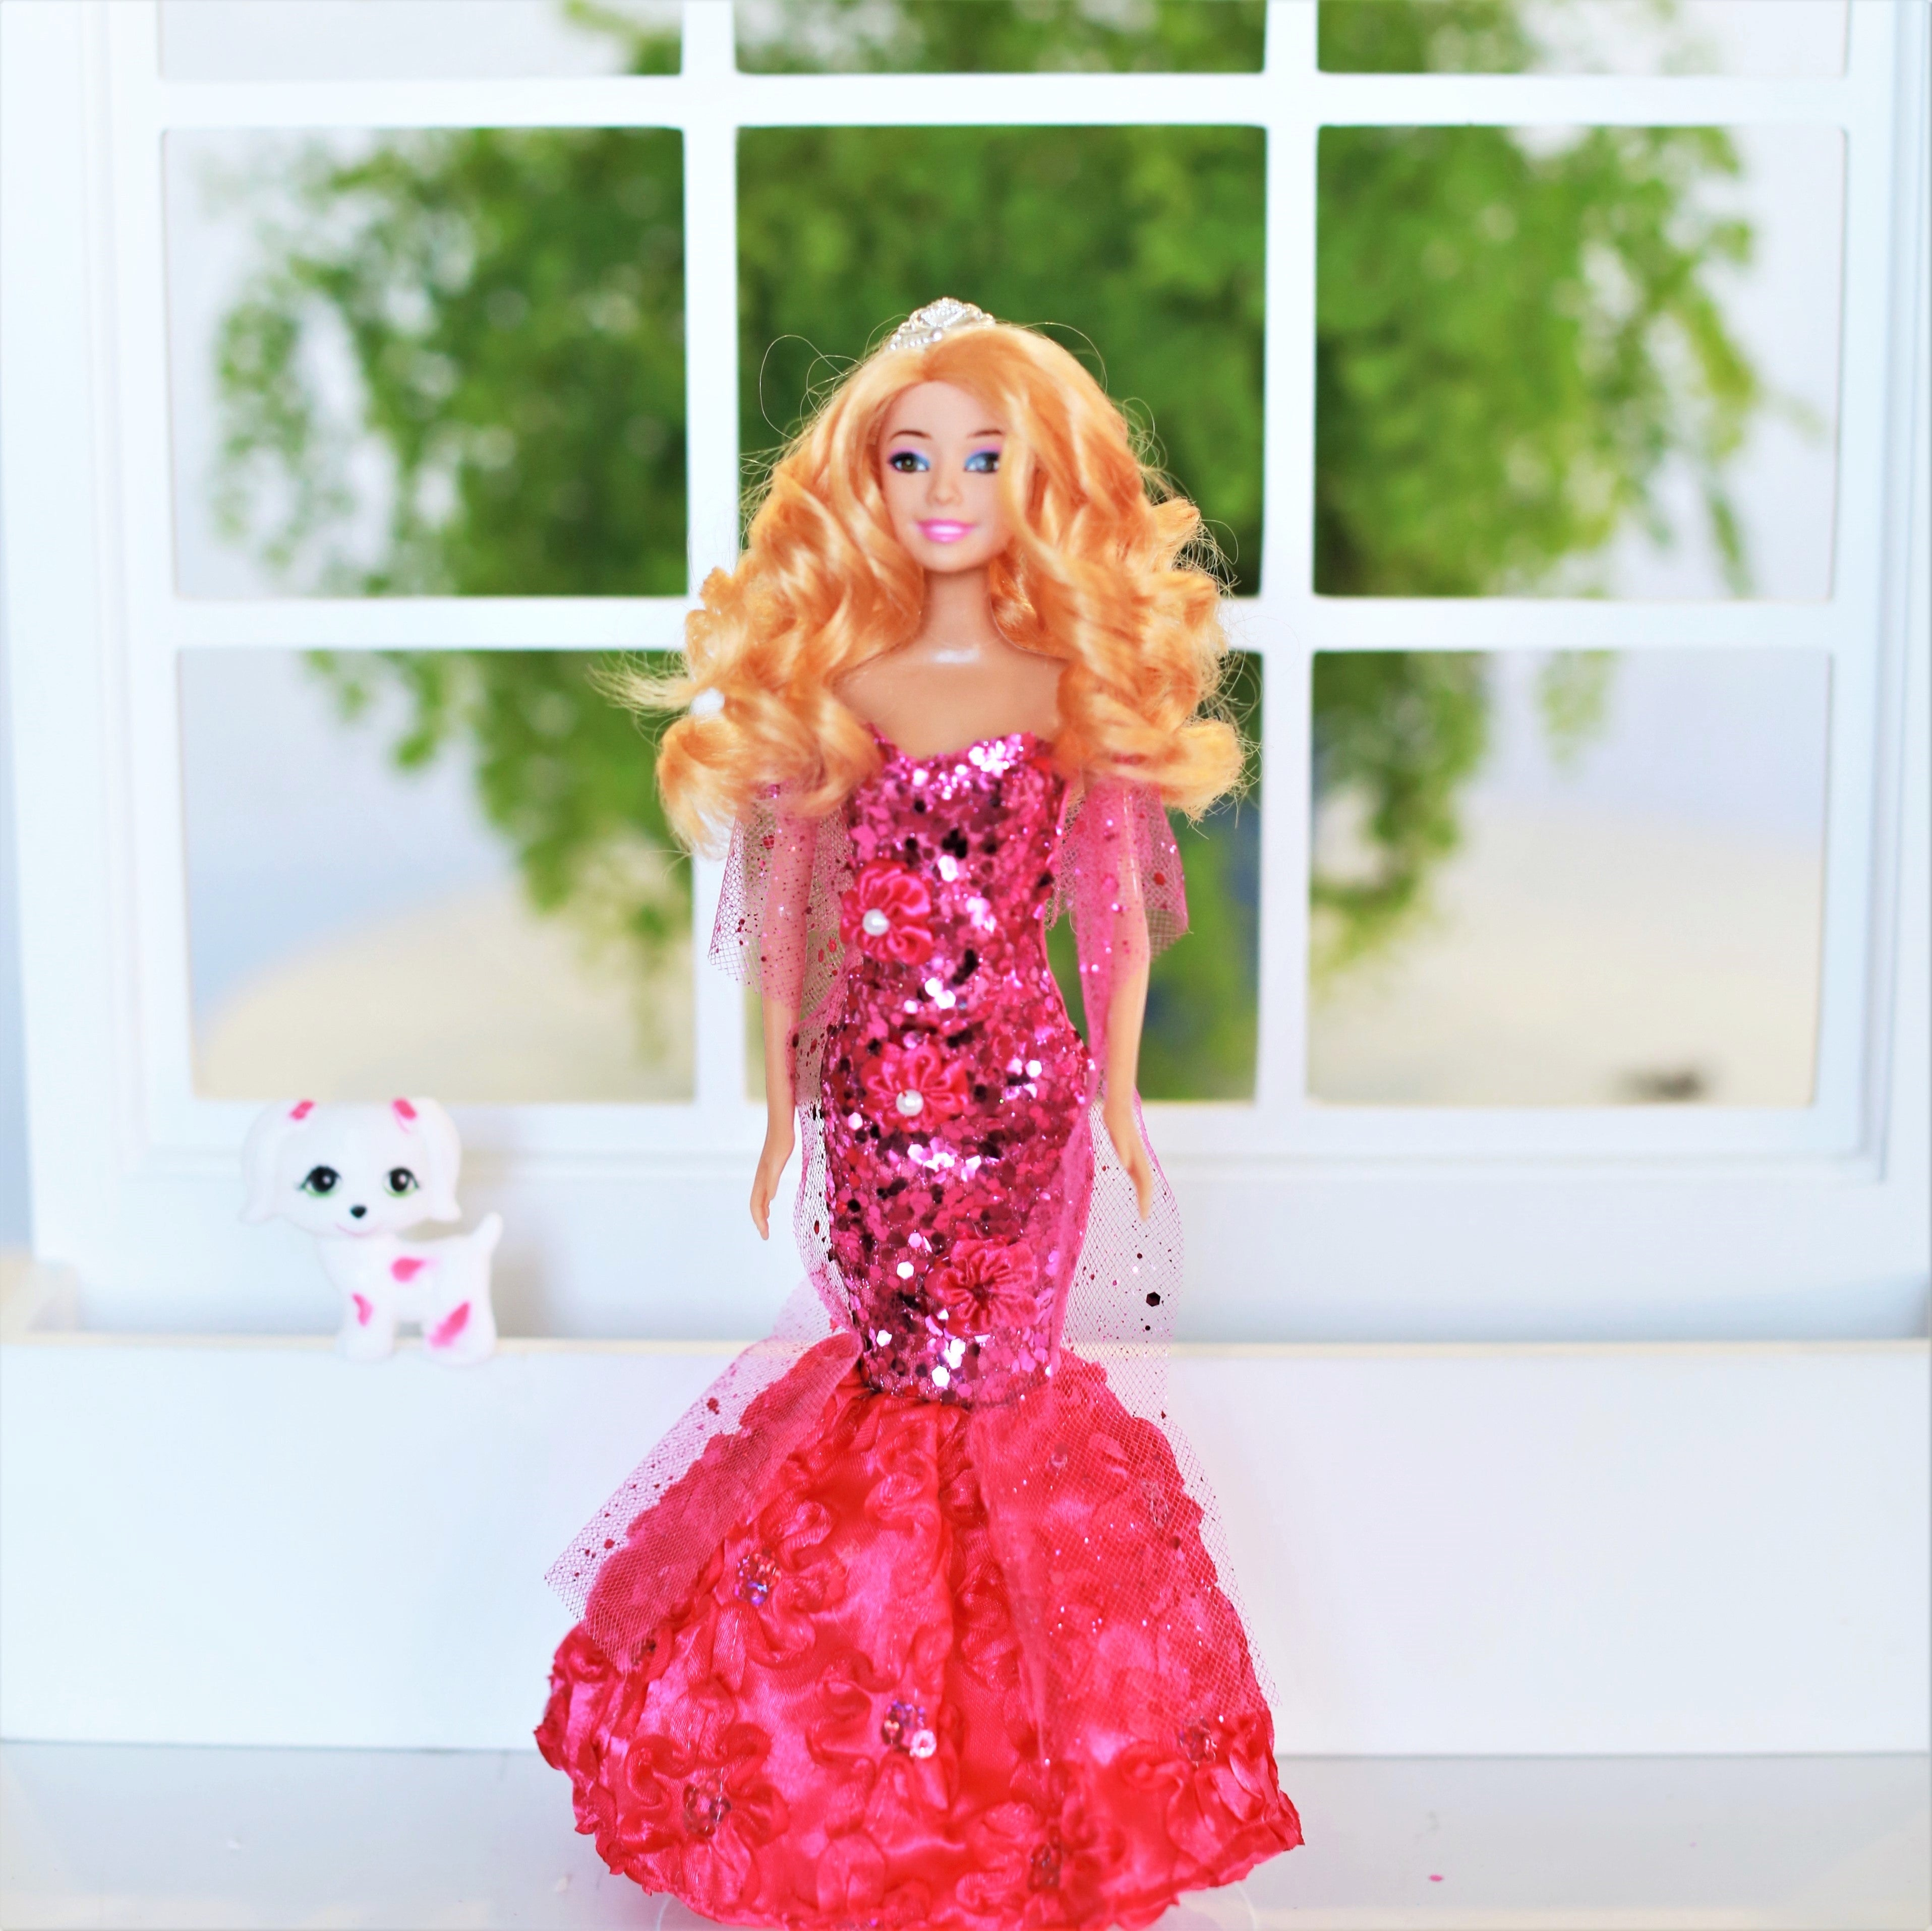 Mermaid Princess Doll & Accessories for Girls